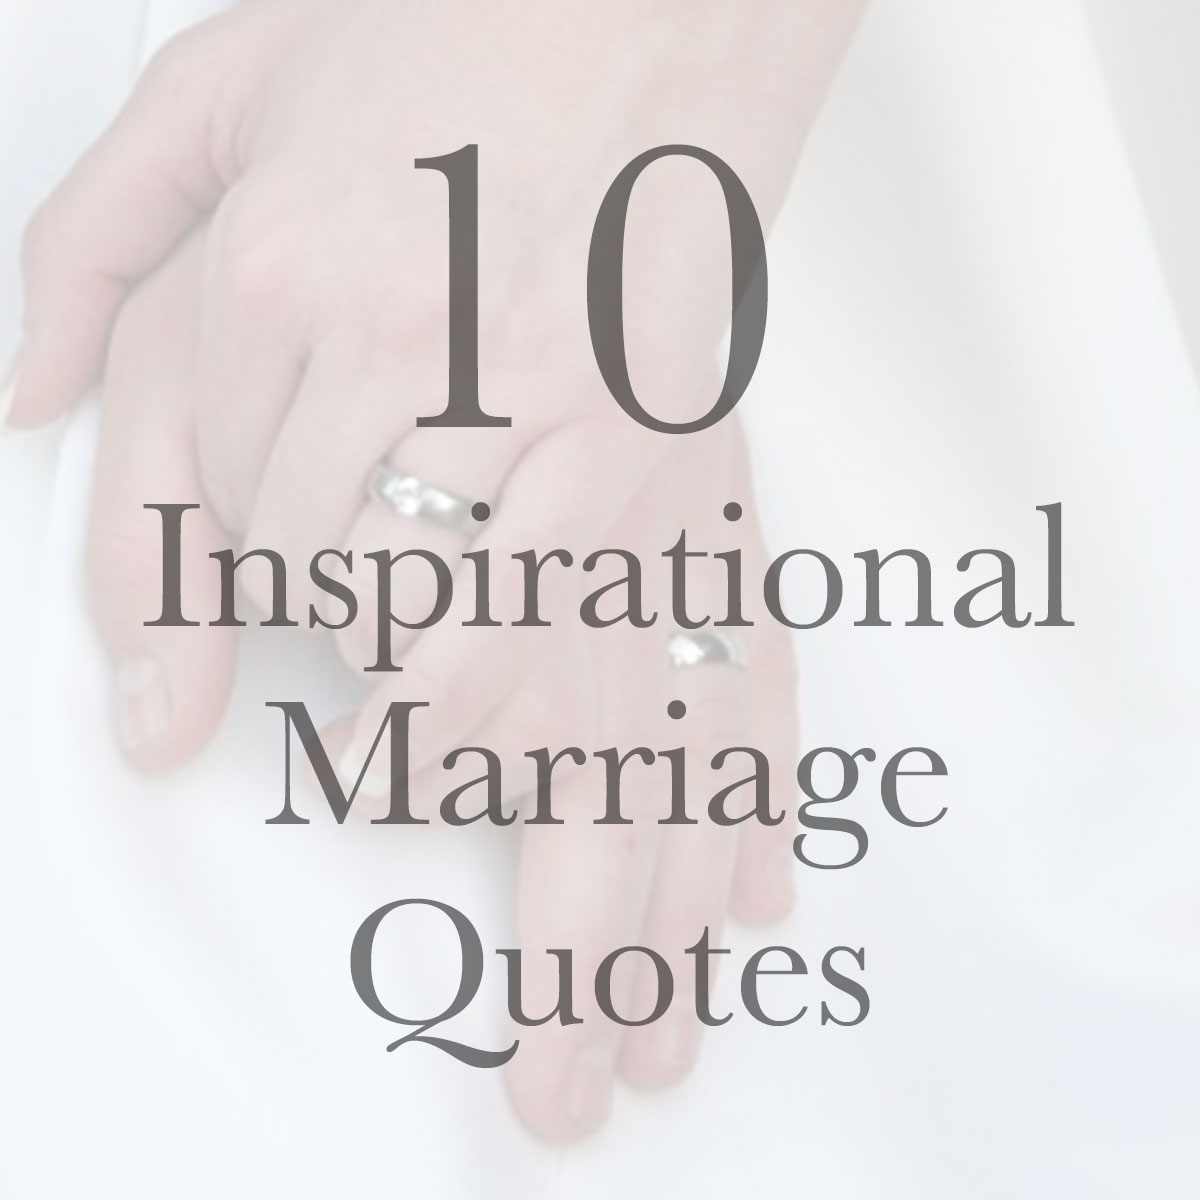 Christian Marriage Quotes Endearing Positive Marriage Quotes & Love Quotes